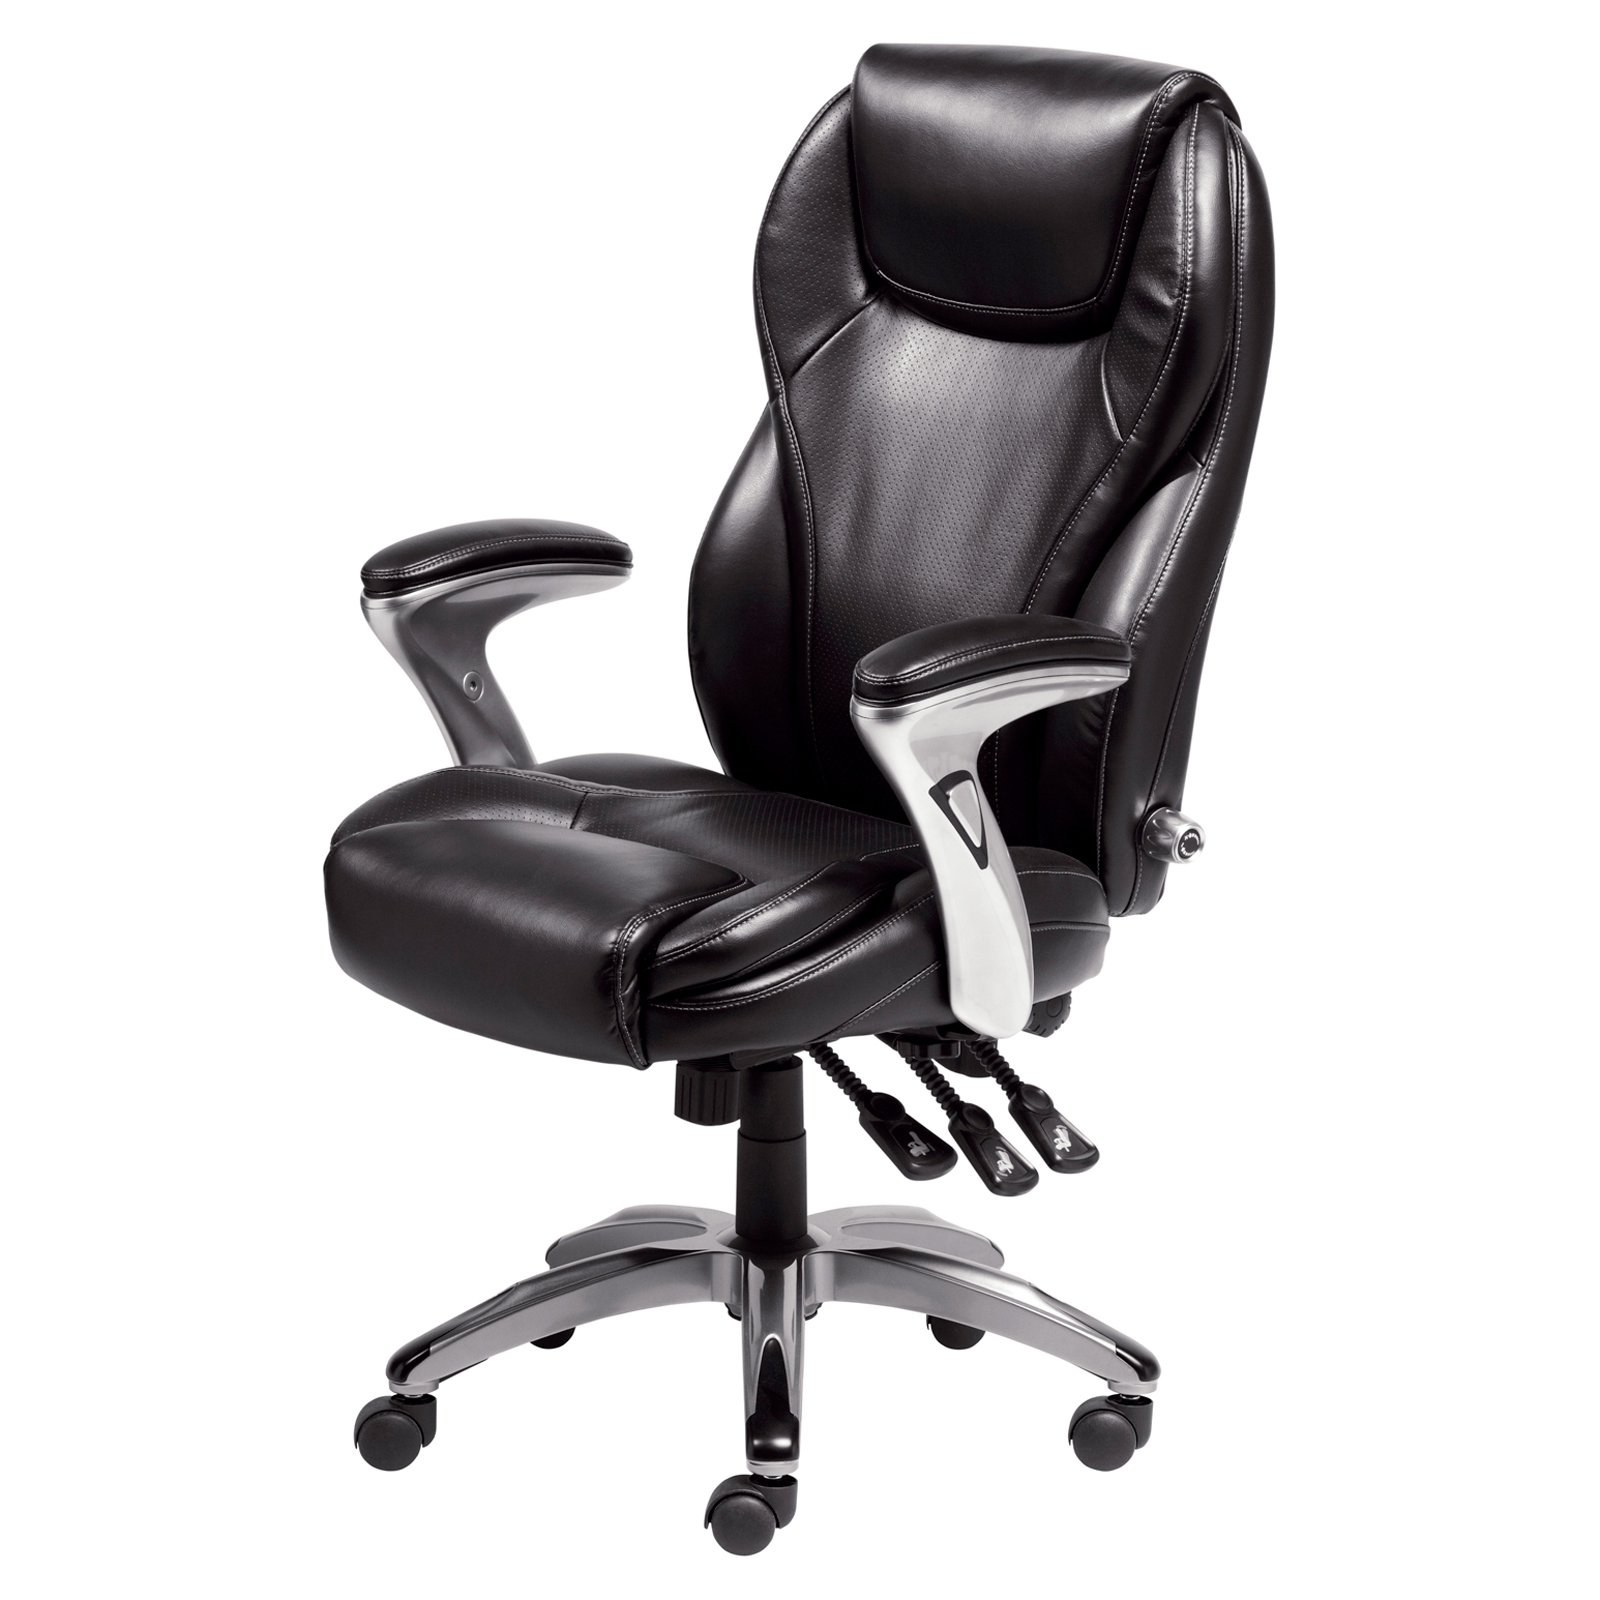 Widely Used Black Executive Office Chairs In Serta Bonded Leather Ergo Executive Office Chair – Black (View 20 of 20)